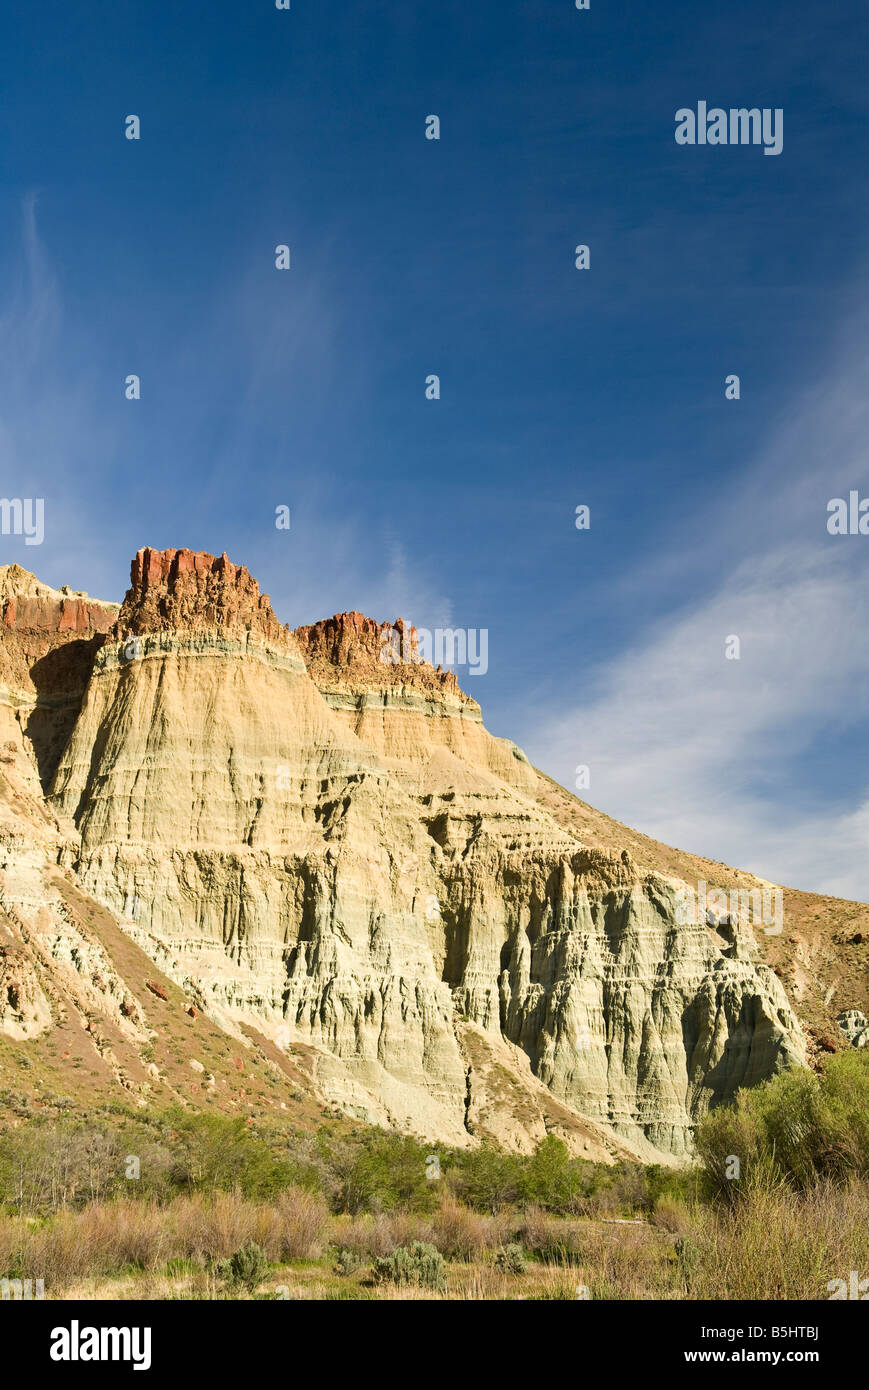 Cathedral Rock John Day Fossil Beds National Monument Oregon - Stock Image